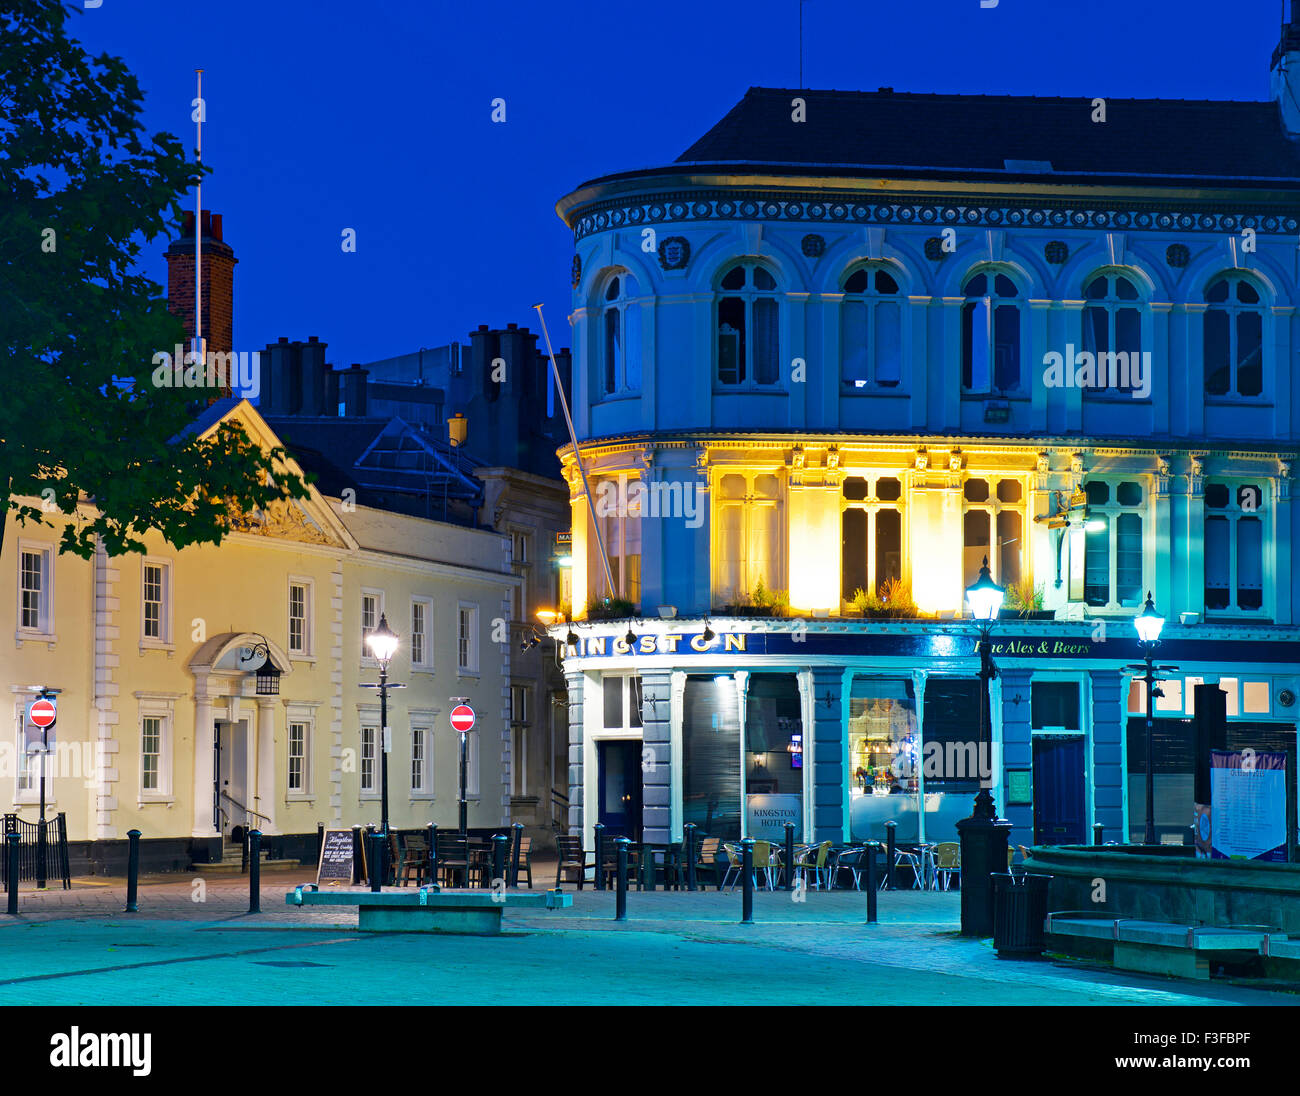 The Kingston Hotel and Trinity House, at dusk, Kingston upon Hull, East Riding of Yorkshire, Humberside, England - Stock Image